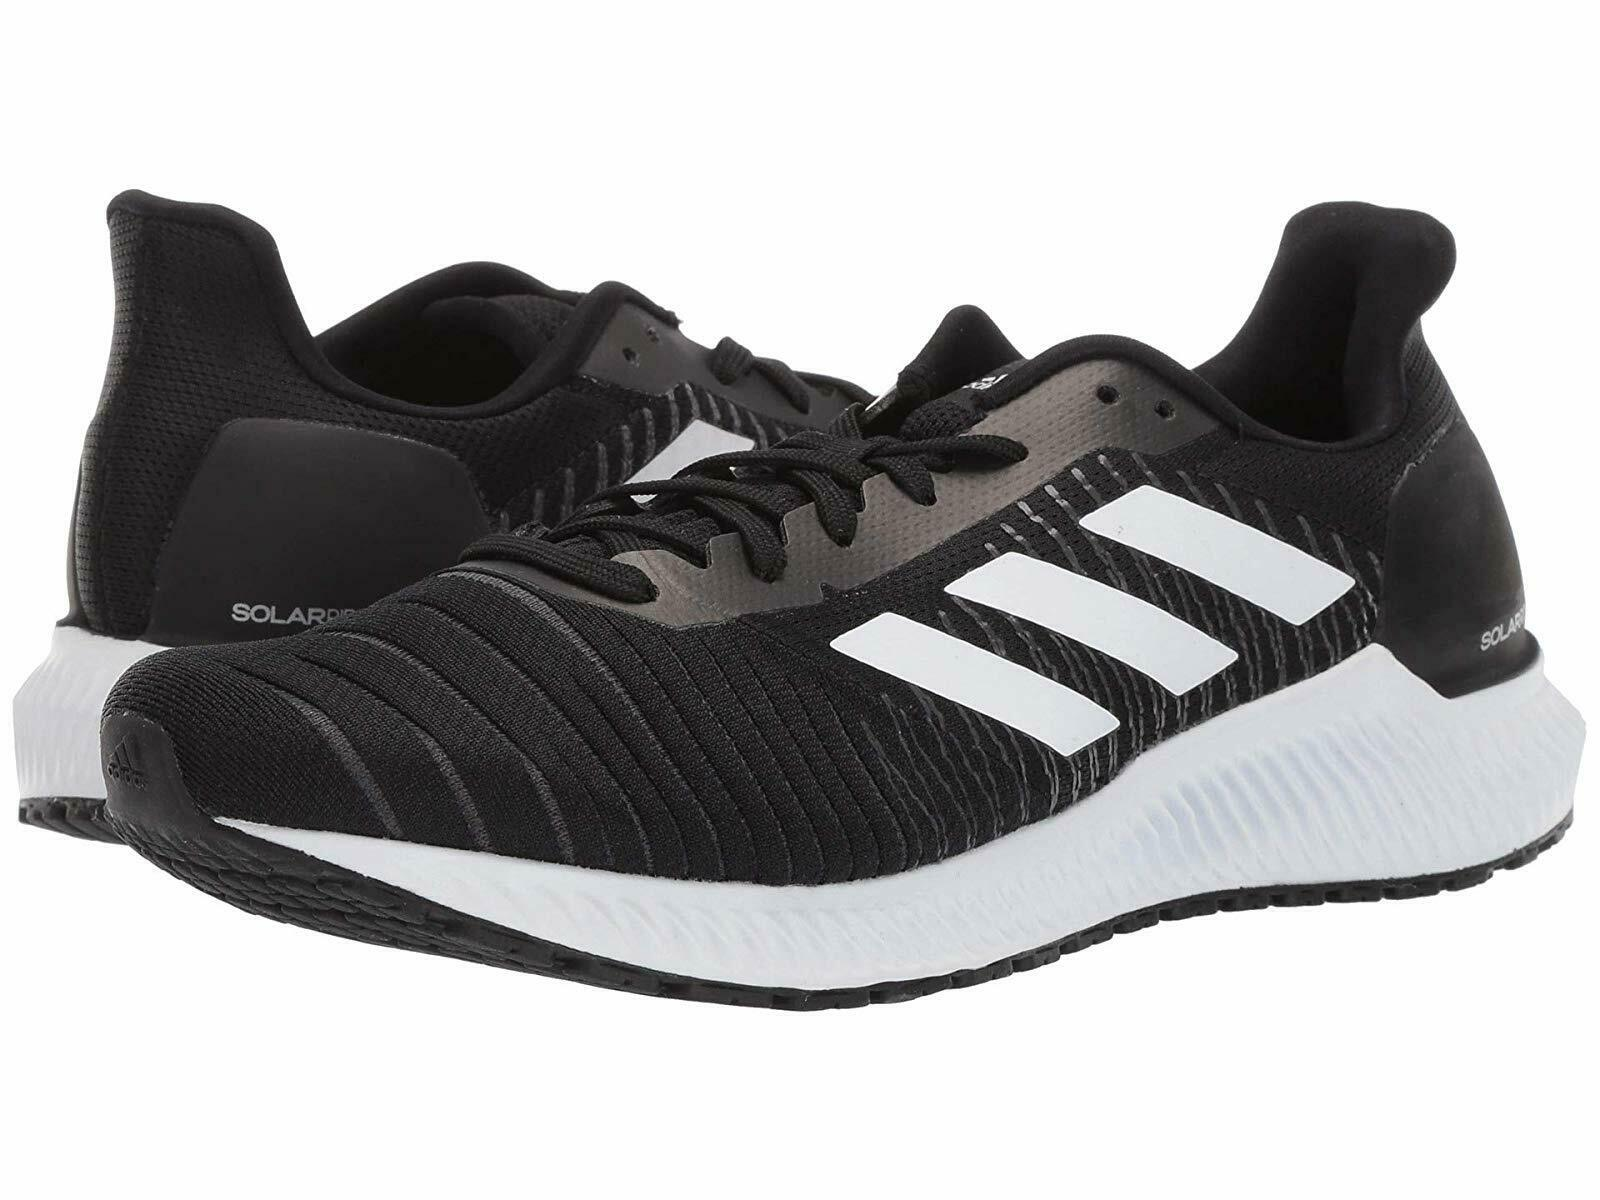 Men's Sneakers & Athletic Shoes adidas Running Solar Ride